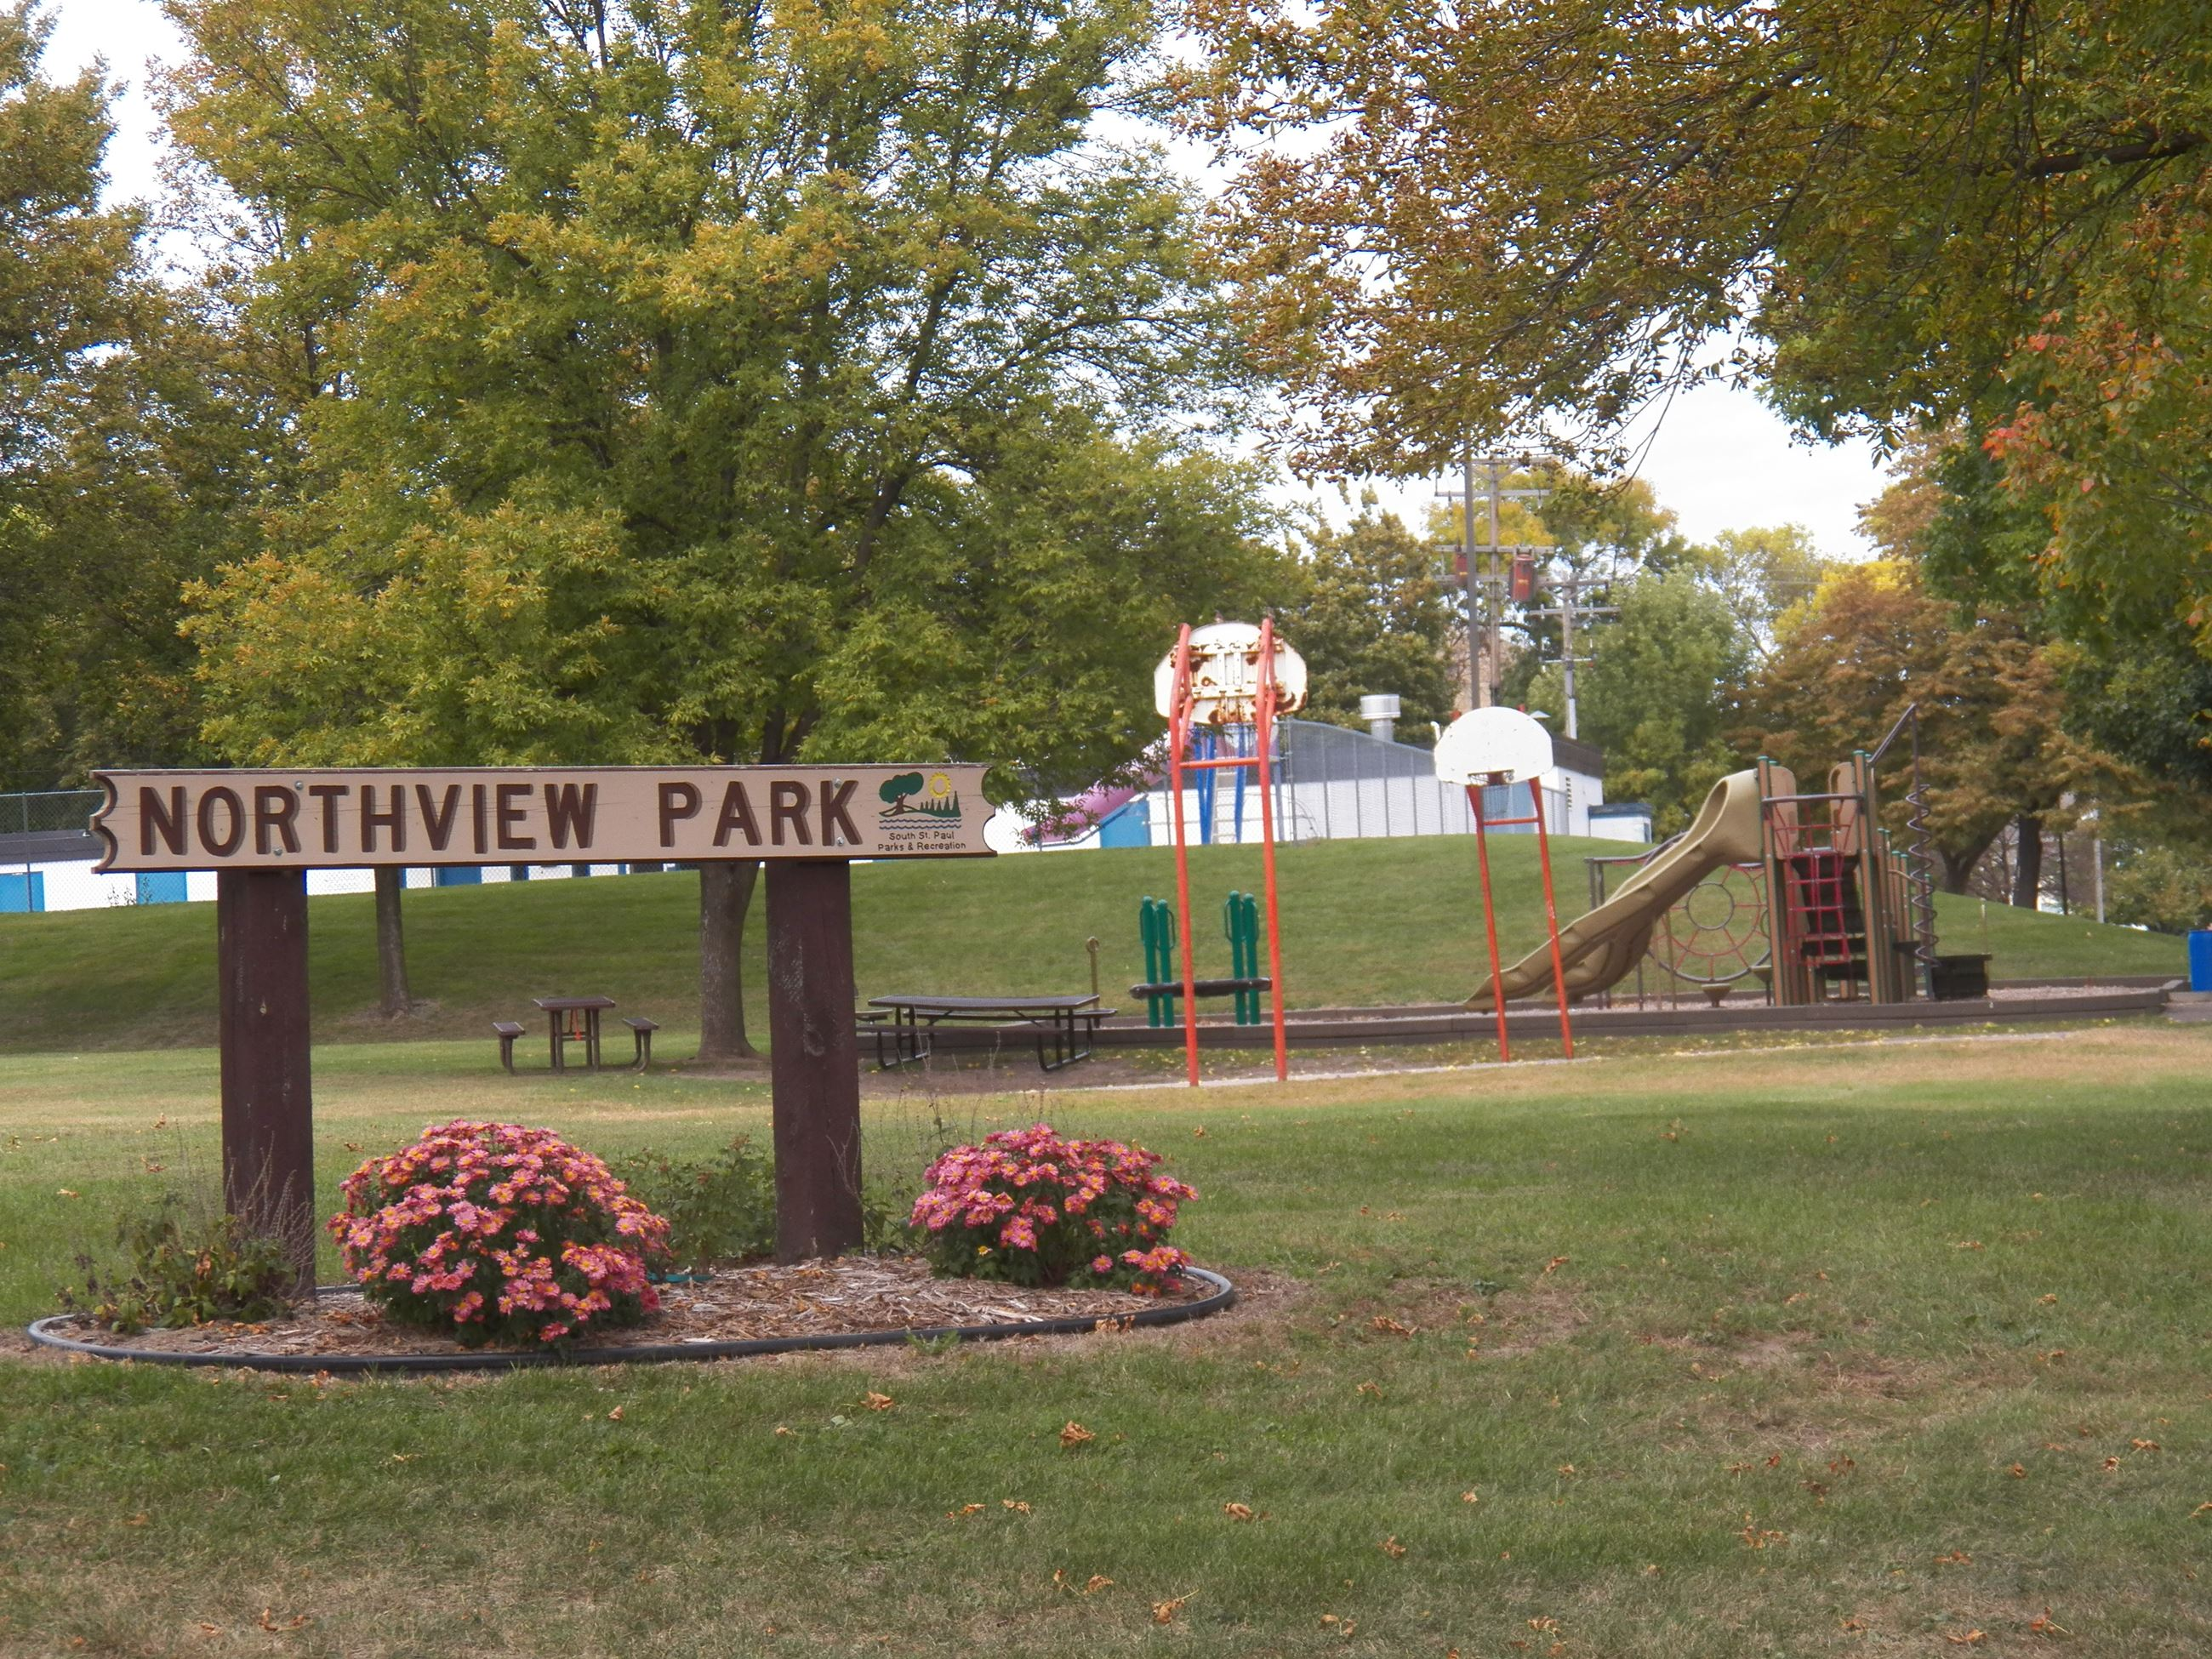 Northview Park